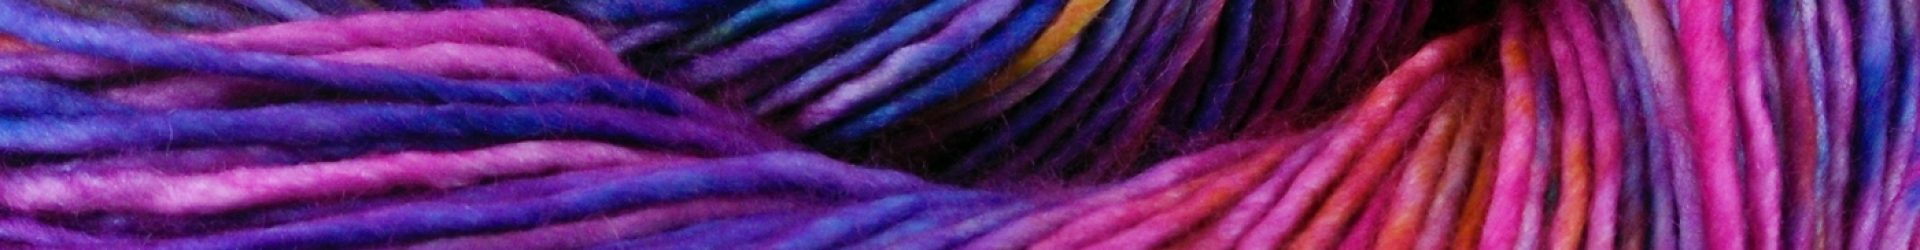 Squish-a-Rino – Huckleberry Finn (worsted weight)